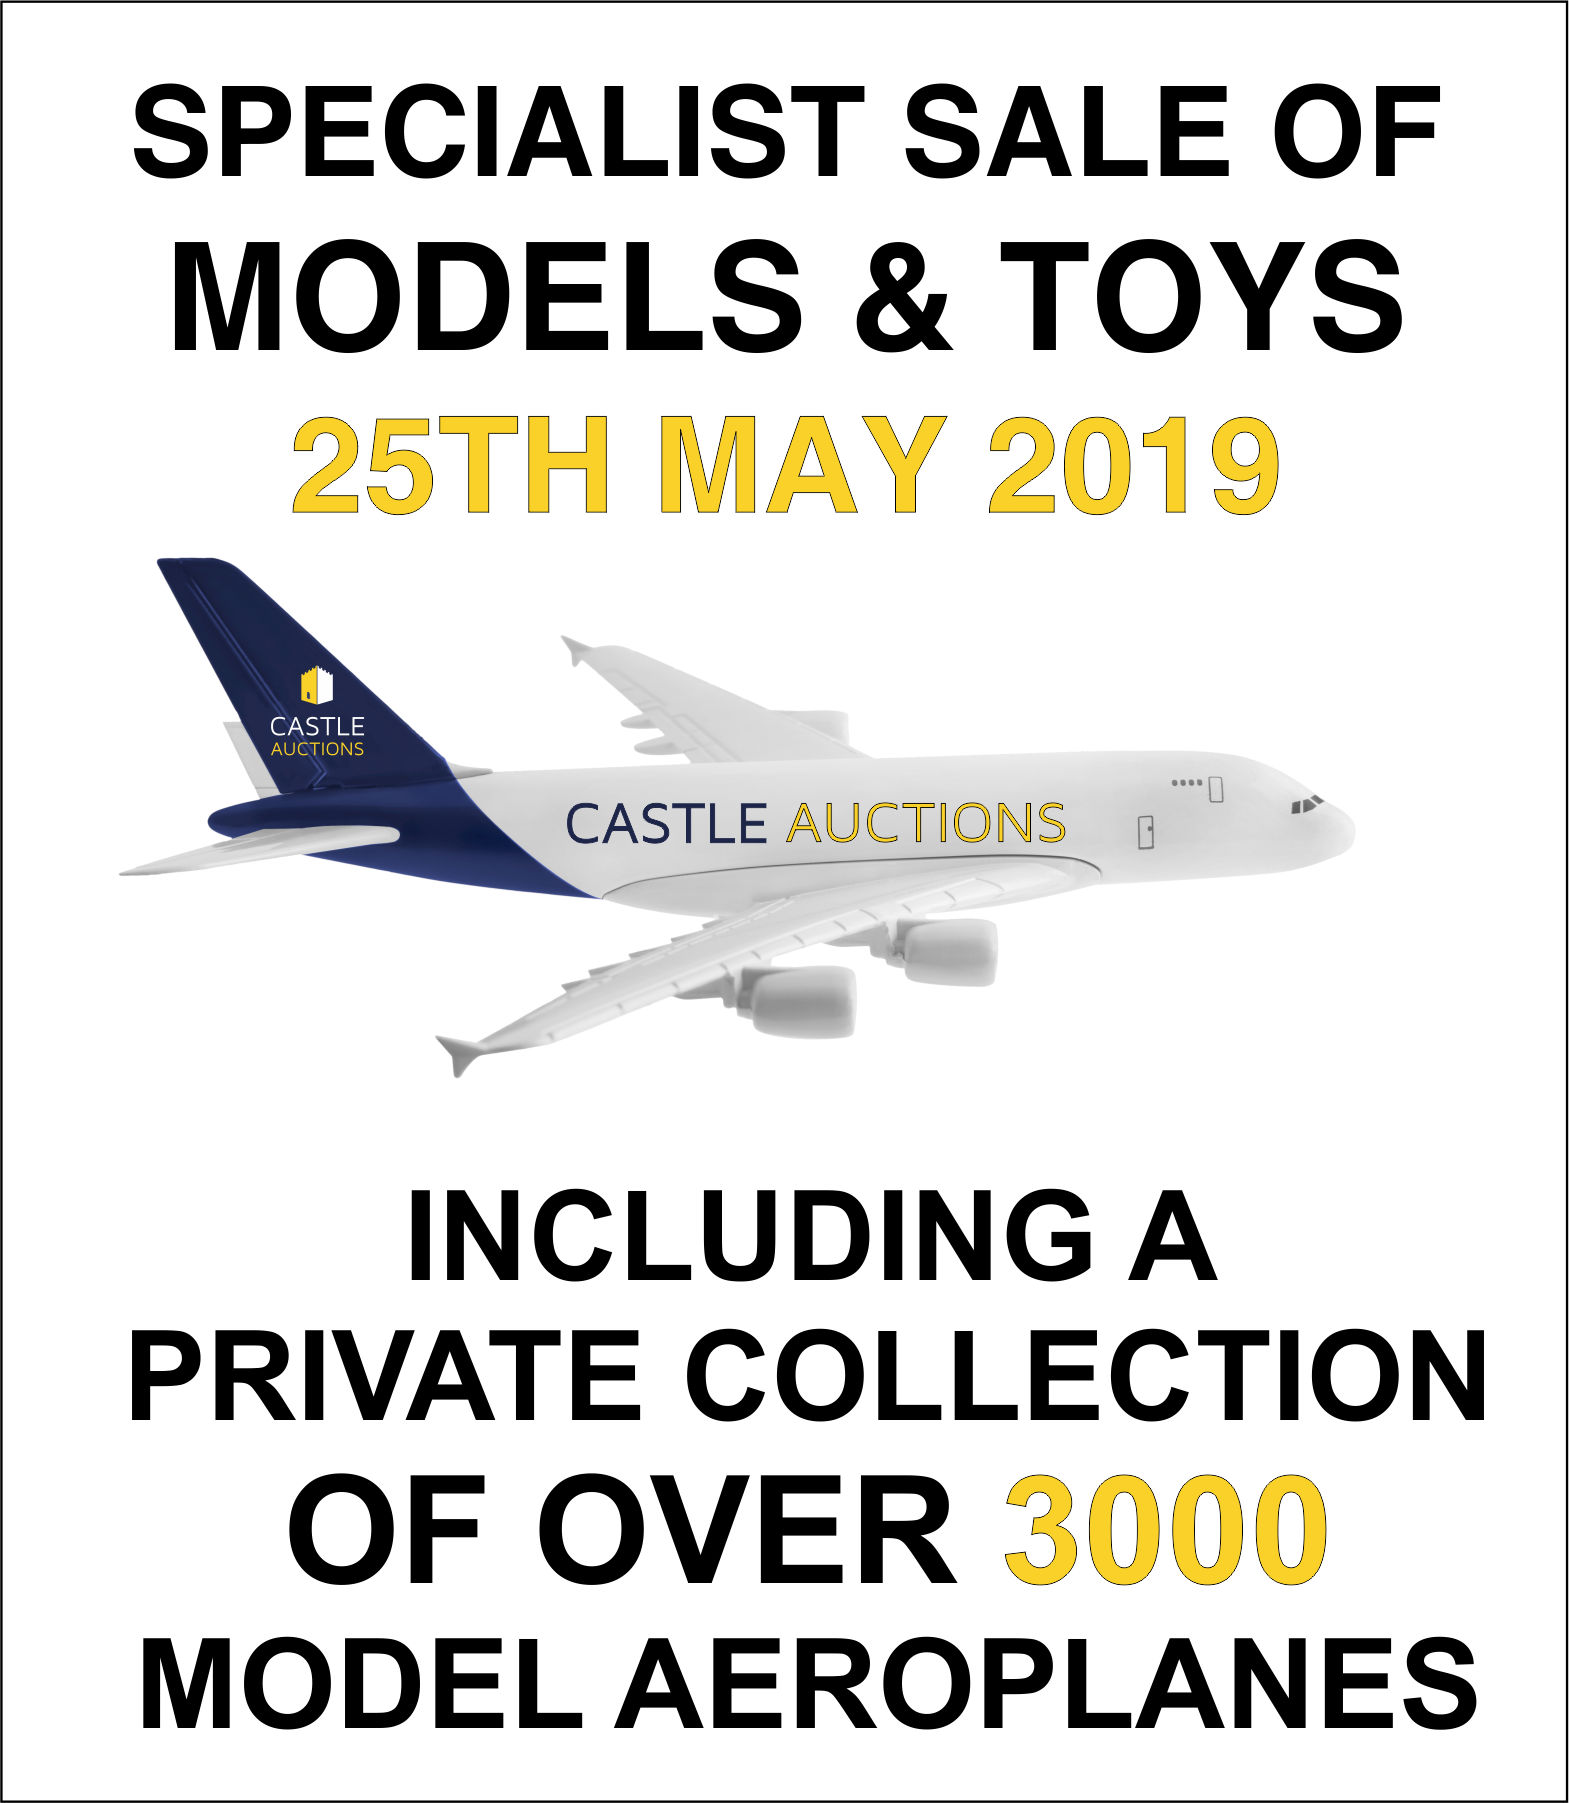 Special Model and Toy Sale 25.05.2019